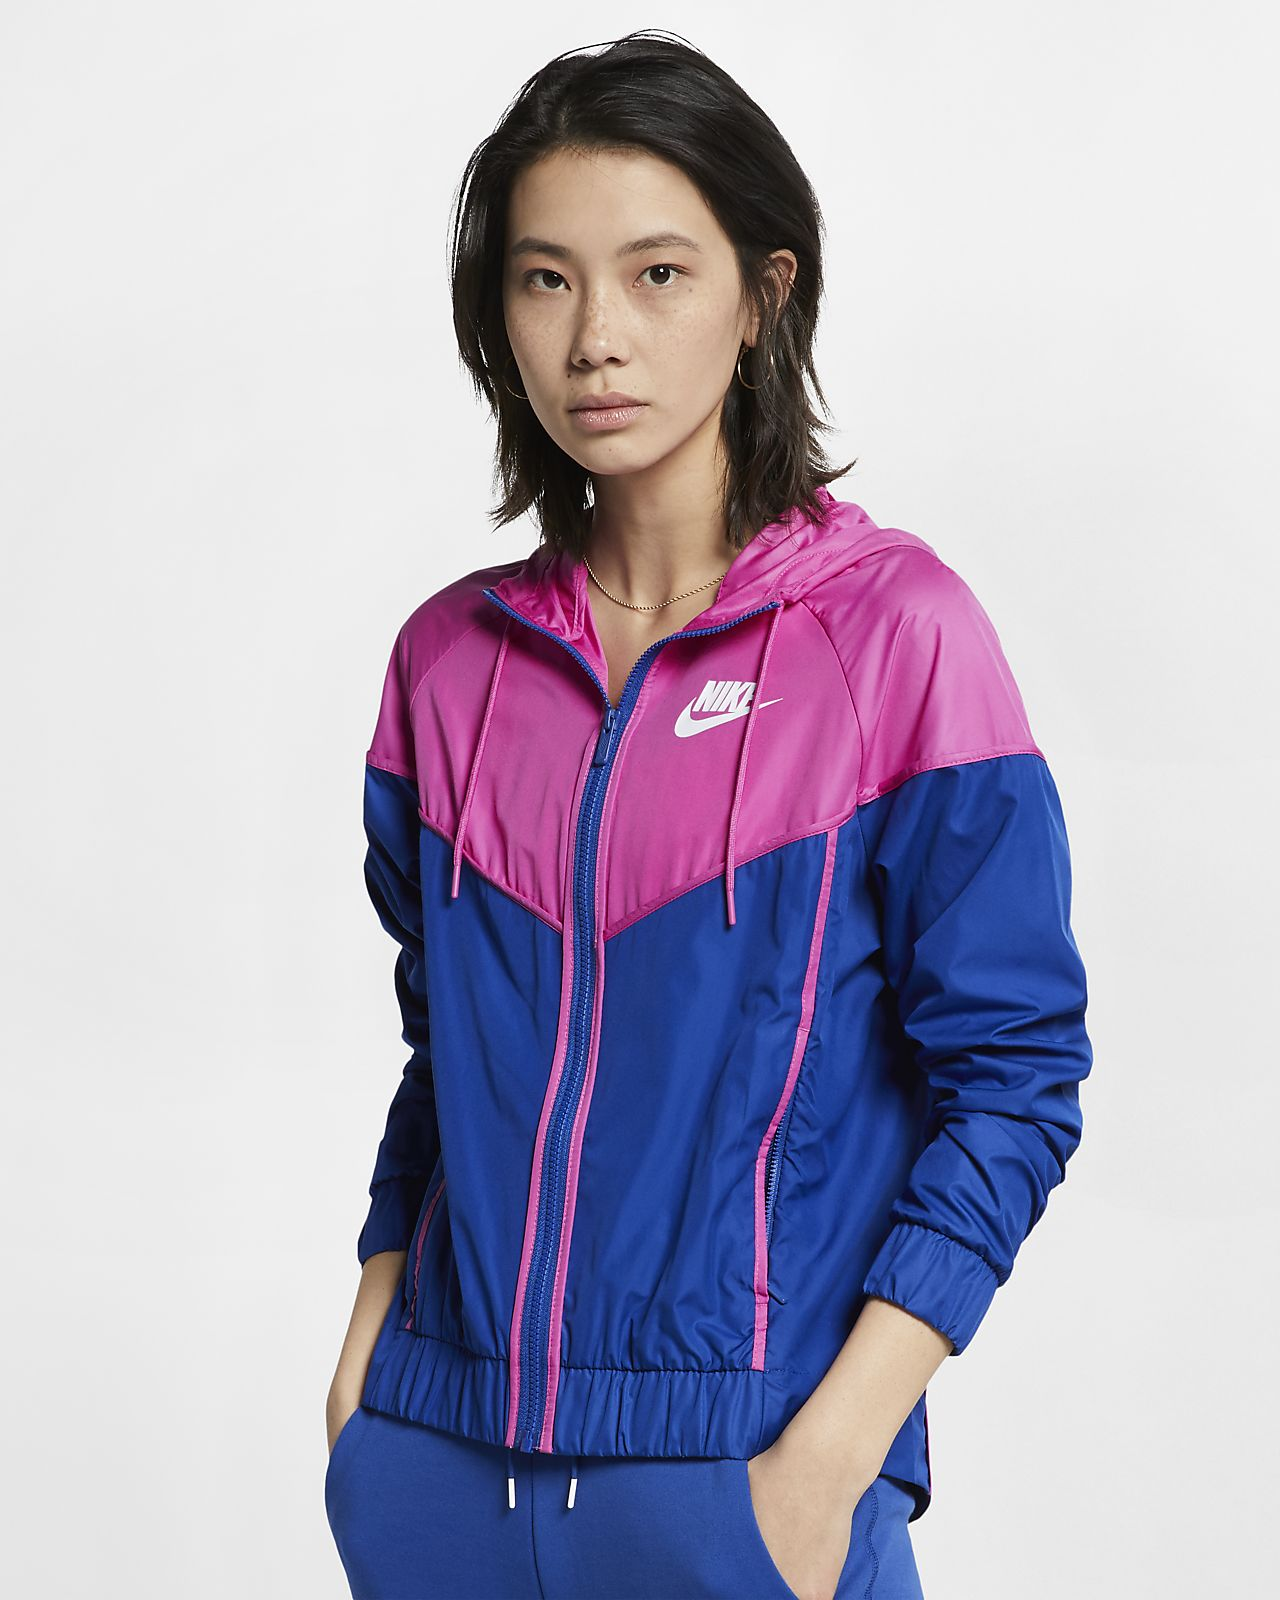 9b8cd48ec715 Nike Sportswear Windrunner Women s Woven Windbreaker. Nike.com